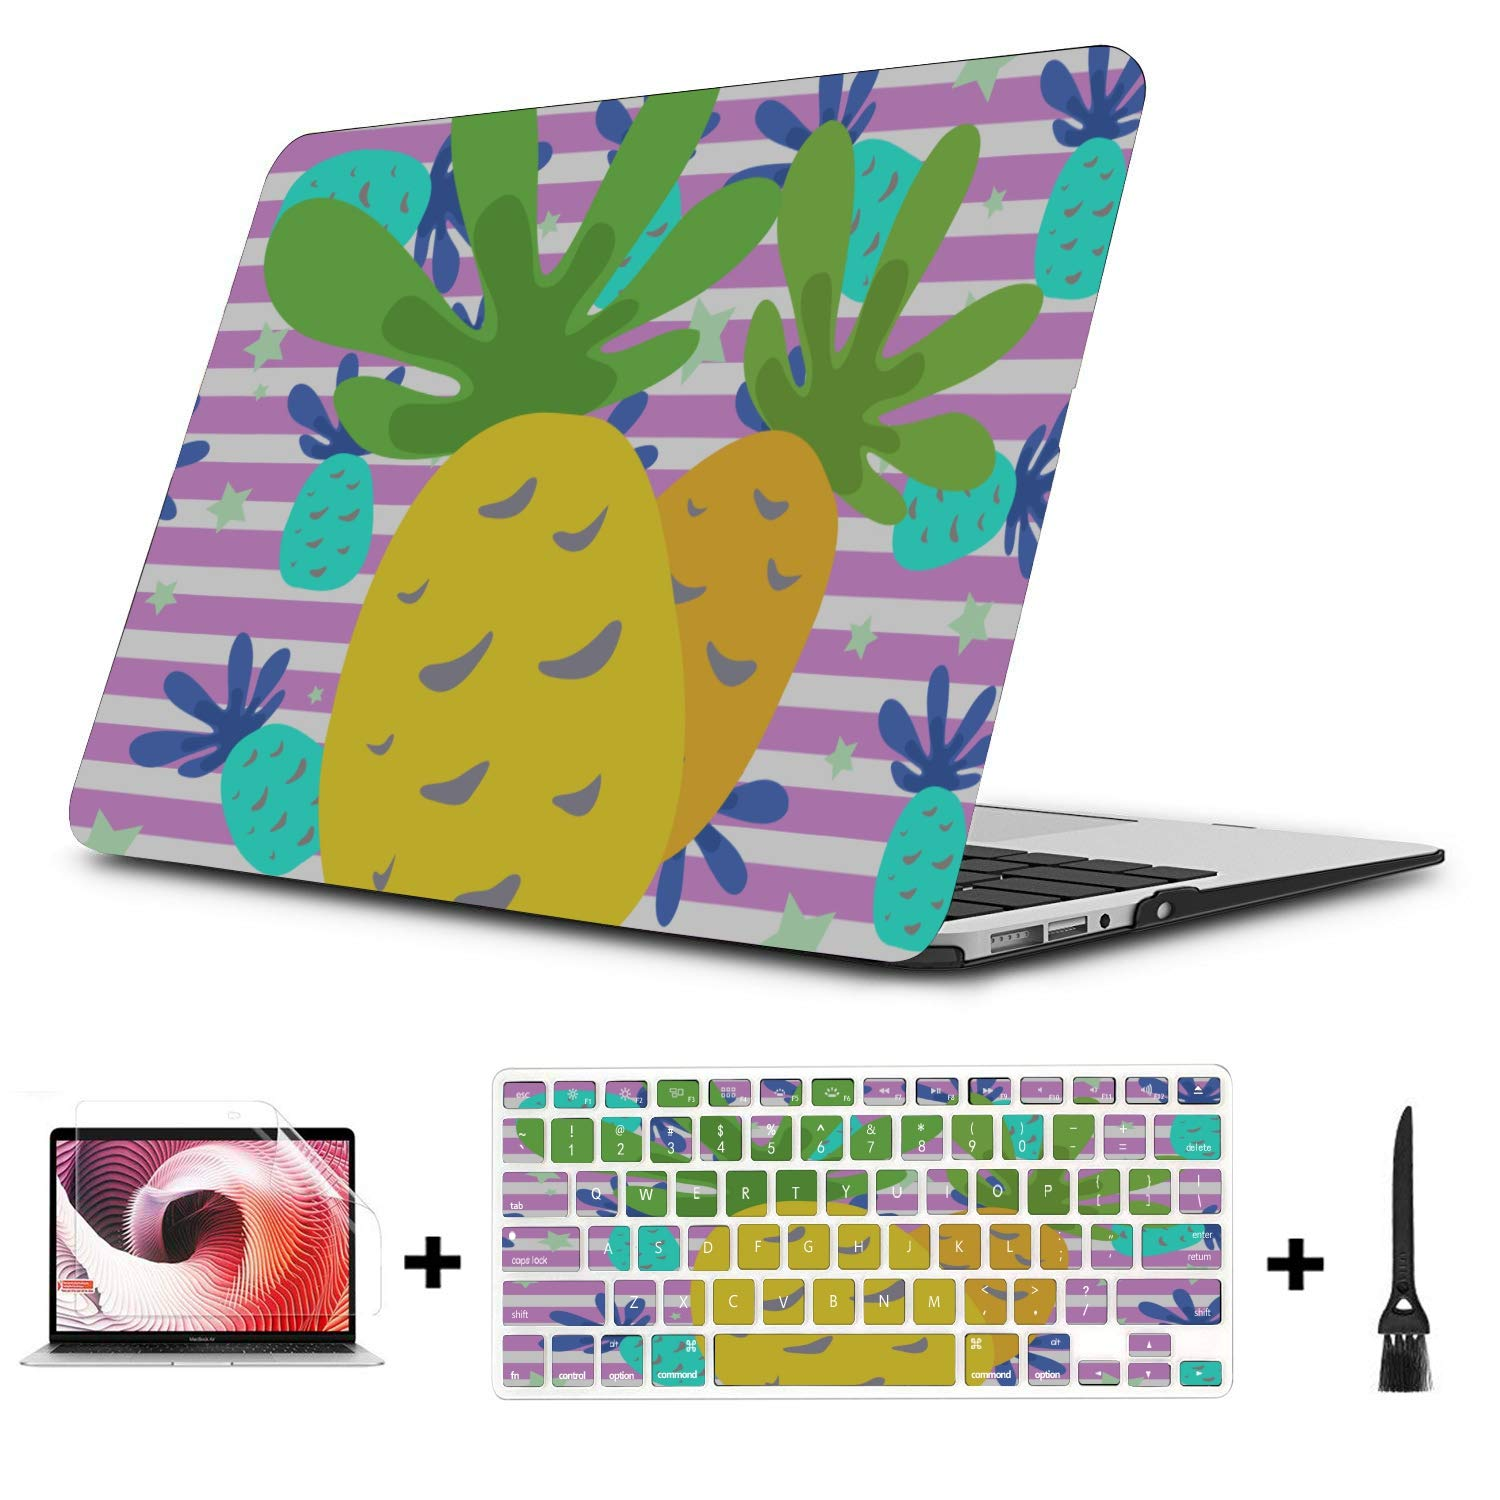 Air Case Summer Fashion Sweet Fruit Pineapple Plastic Hard Shell Compatible Mac Air 11 Pro 13 15 Computer Case Protection for MacBook 2016-2019 Version